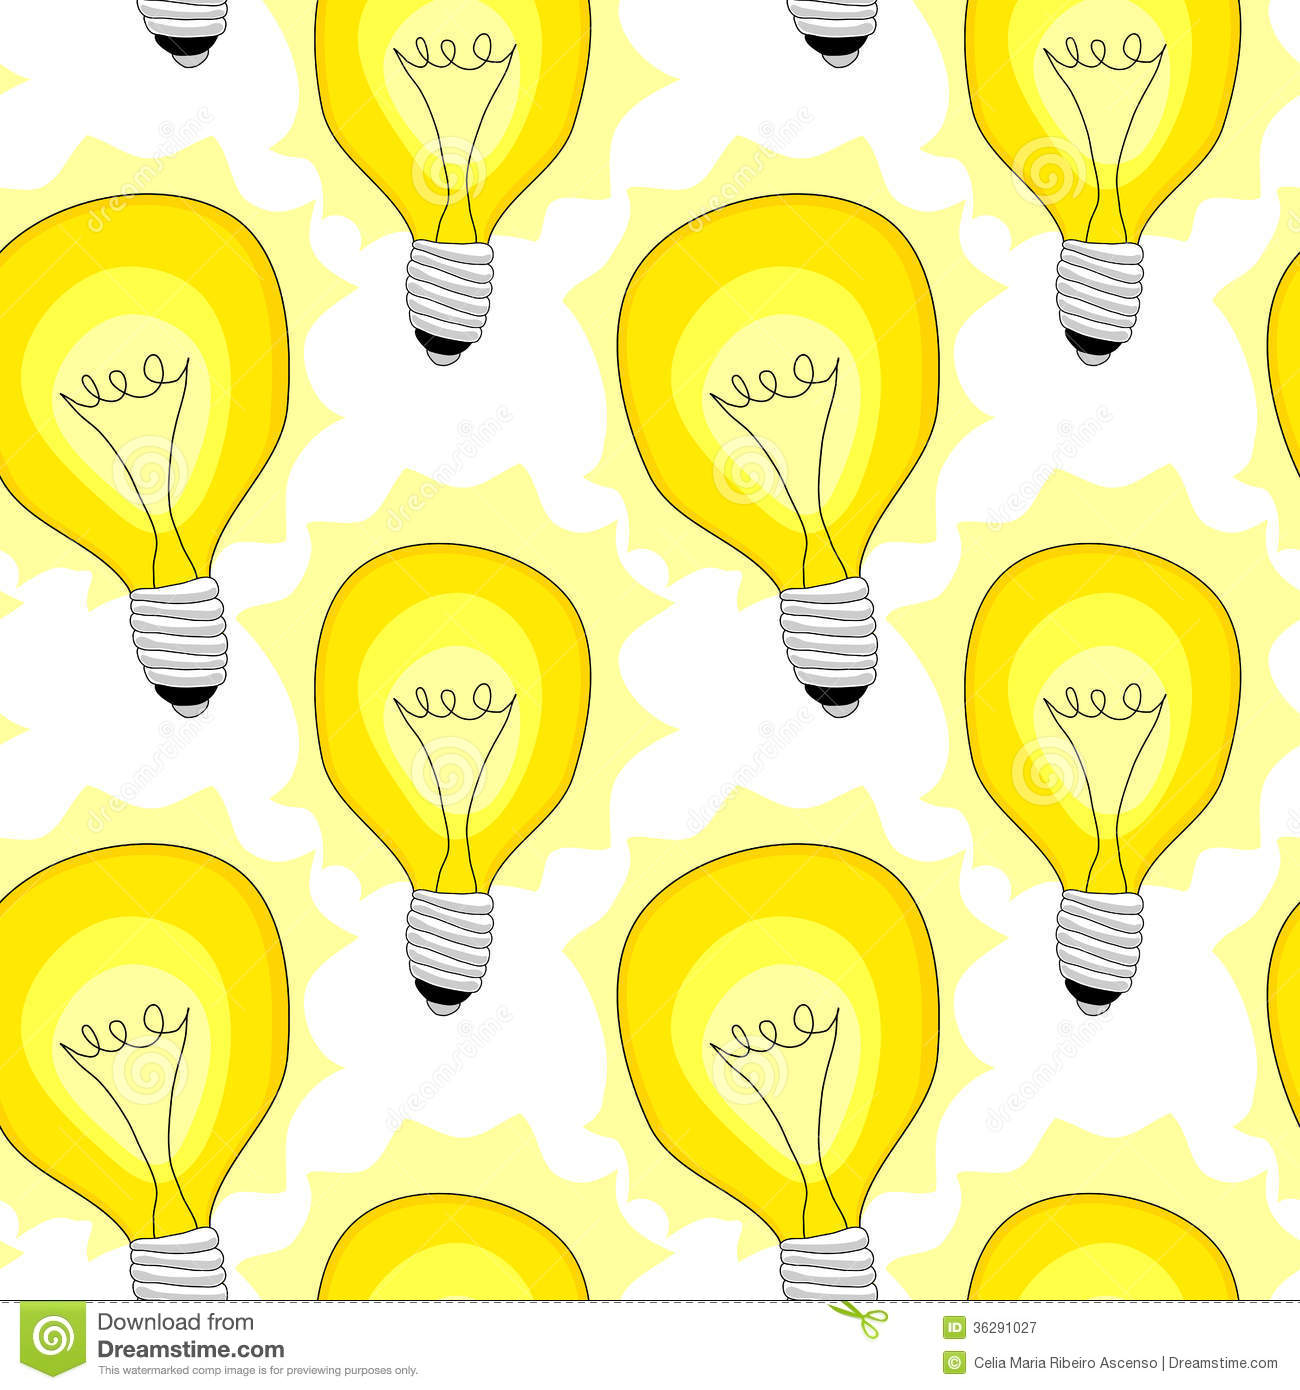 Light Bulb Lamps Seamless Pattern Background Royalty Free ...